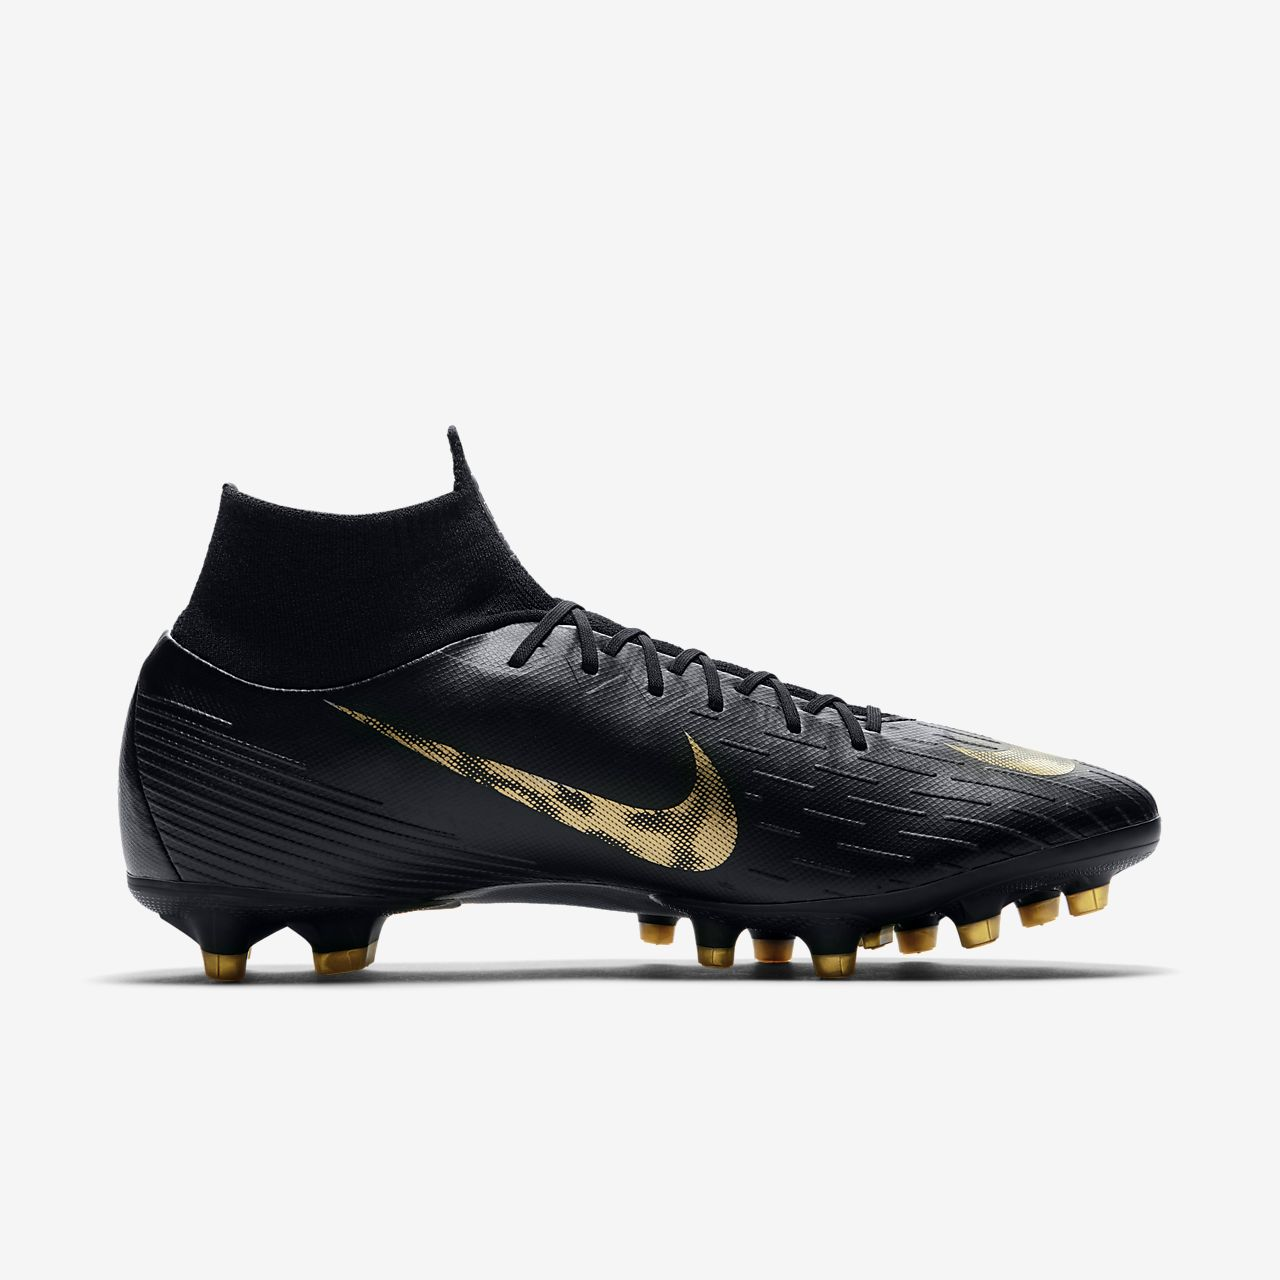 d95e34a6226 Nike Mercurial Superfly VI Pro AG-PRO Artificial-Grass Football Boot ...